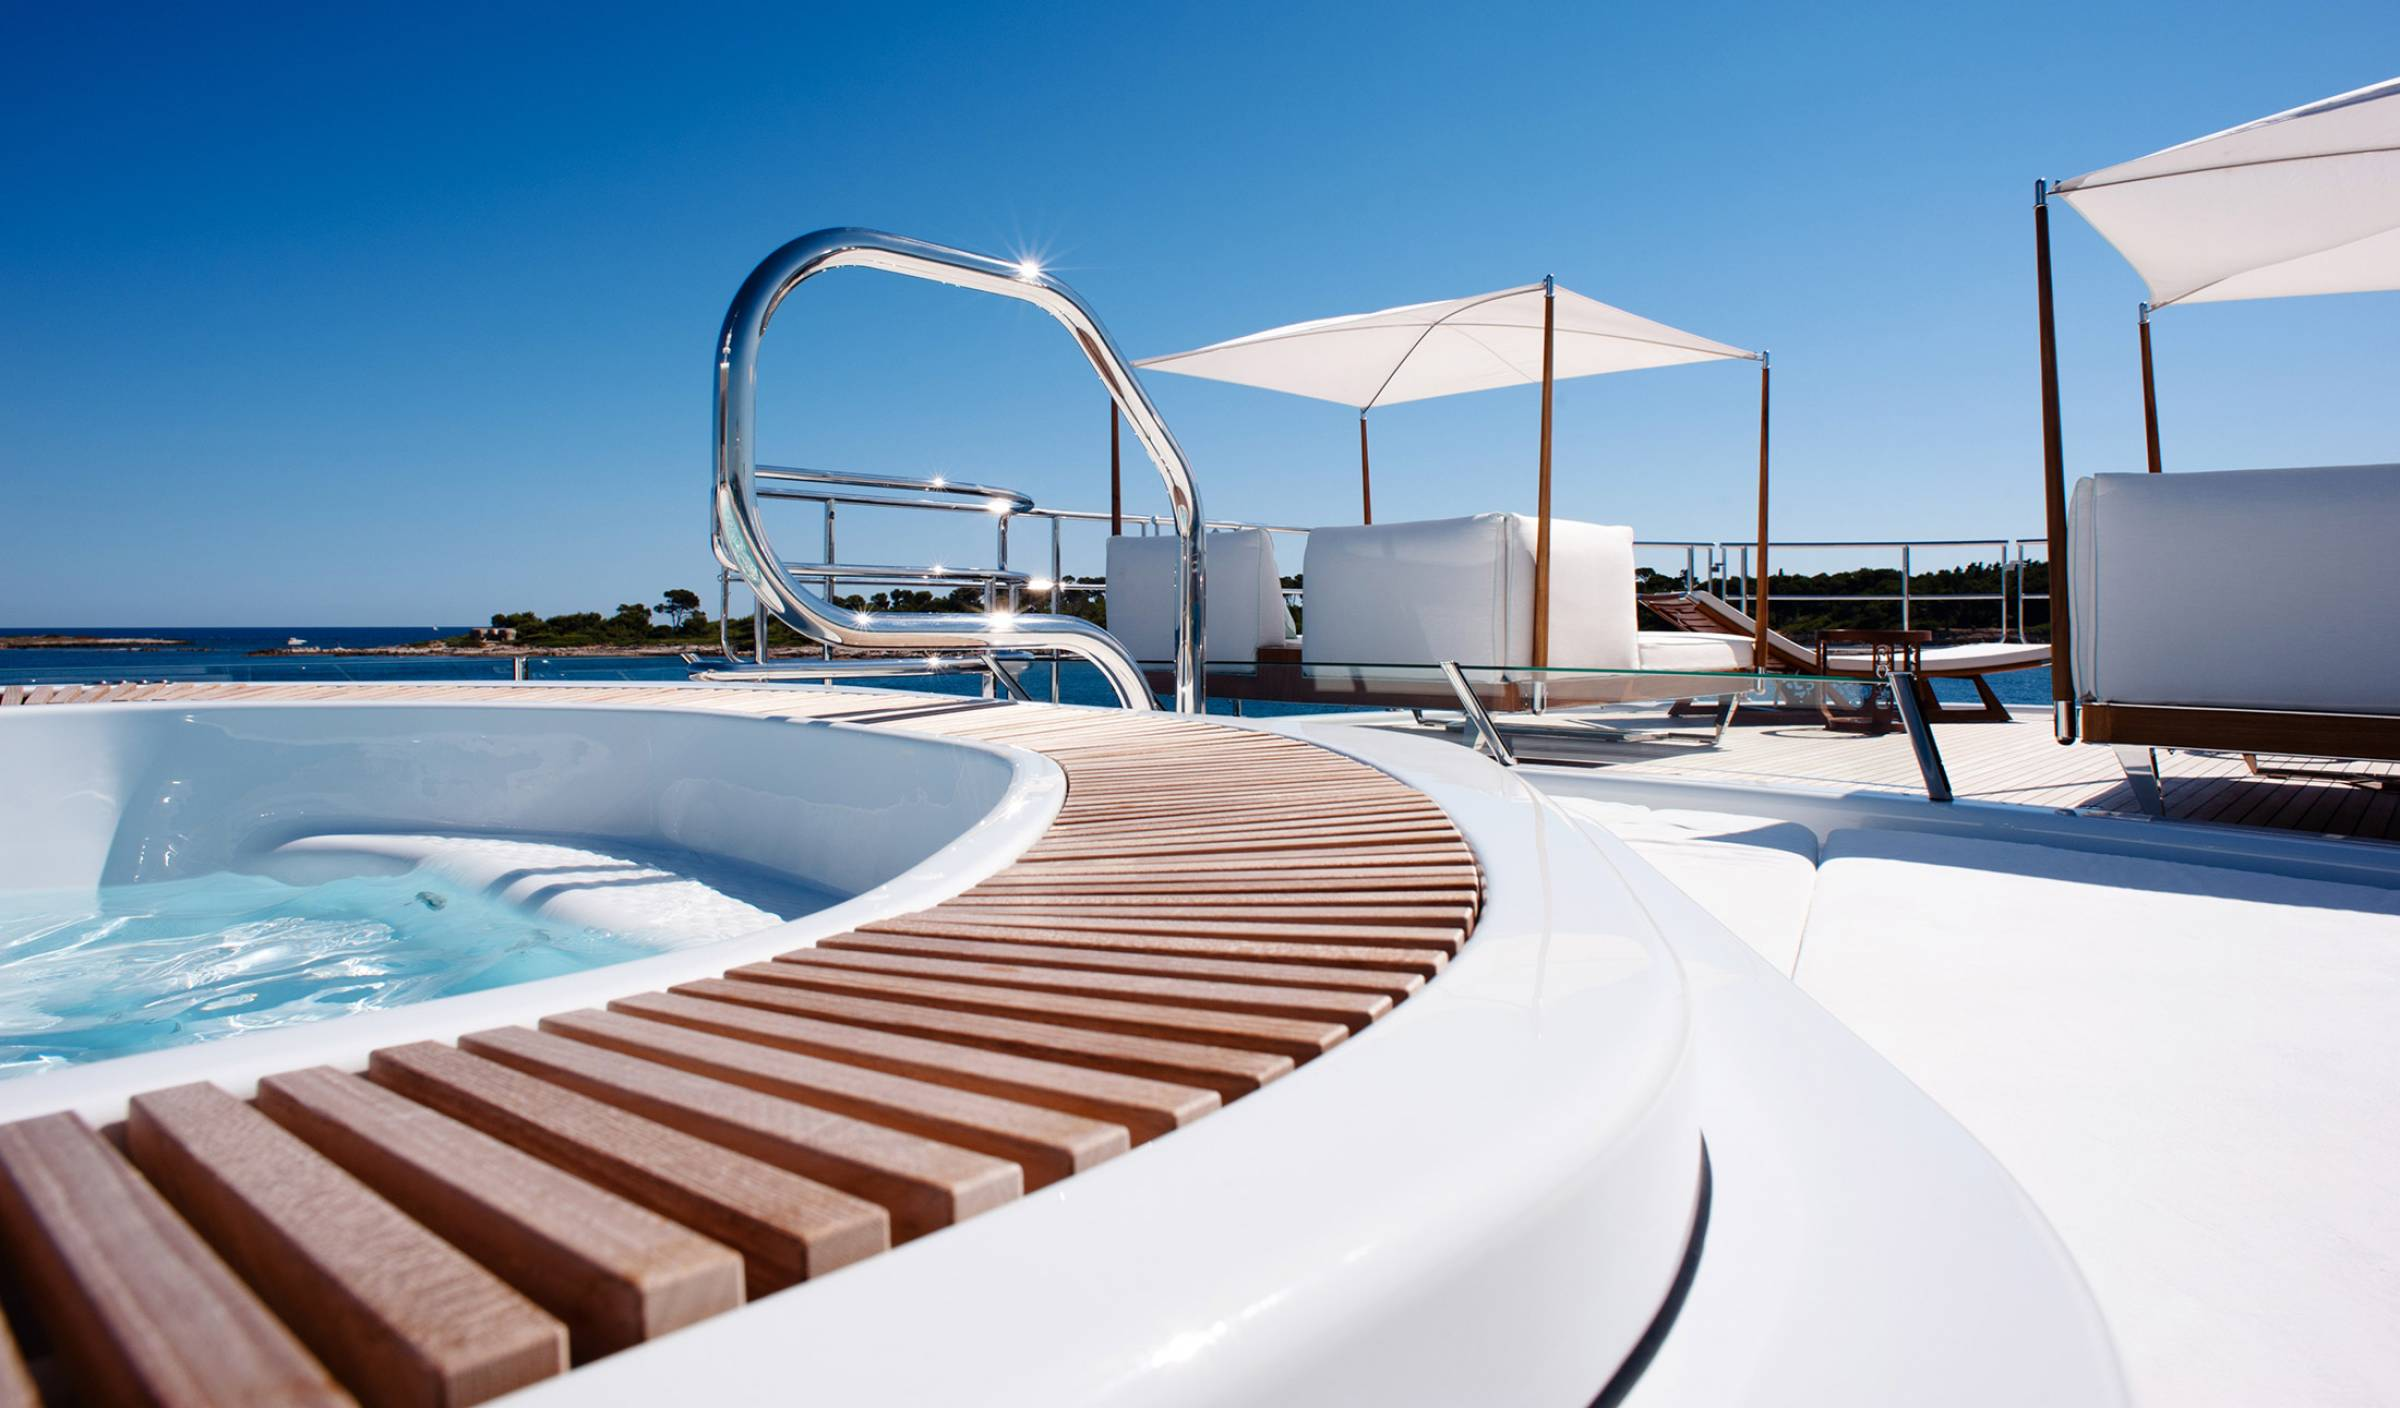 yacht step one amels charterworld luxury superyacht charters. Black Bedroom Furniture Sets. Home Design Ideas